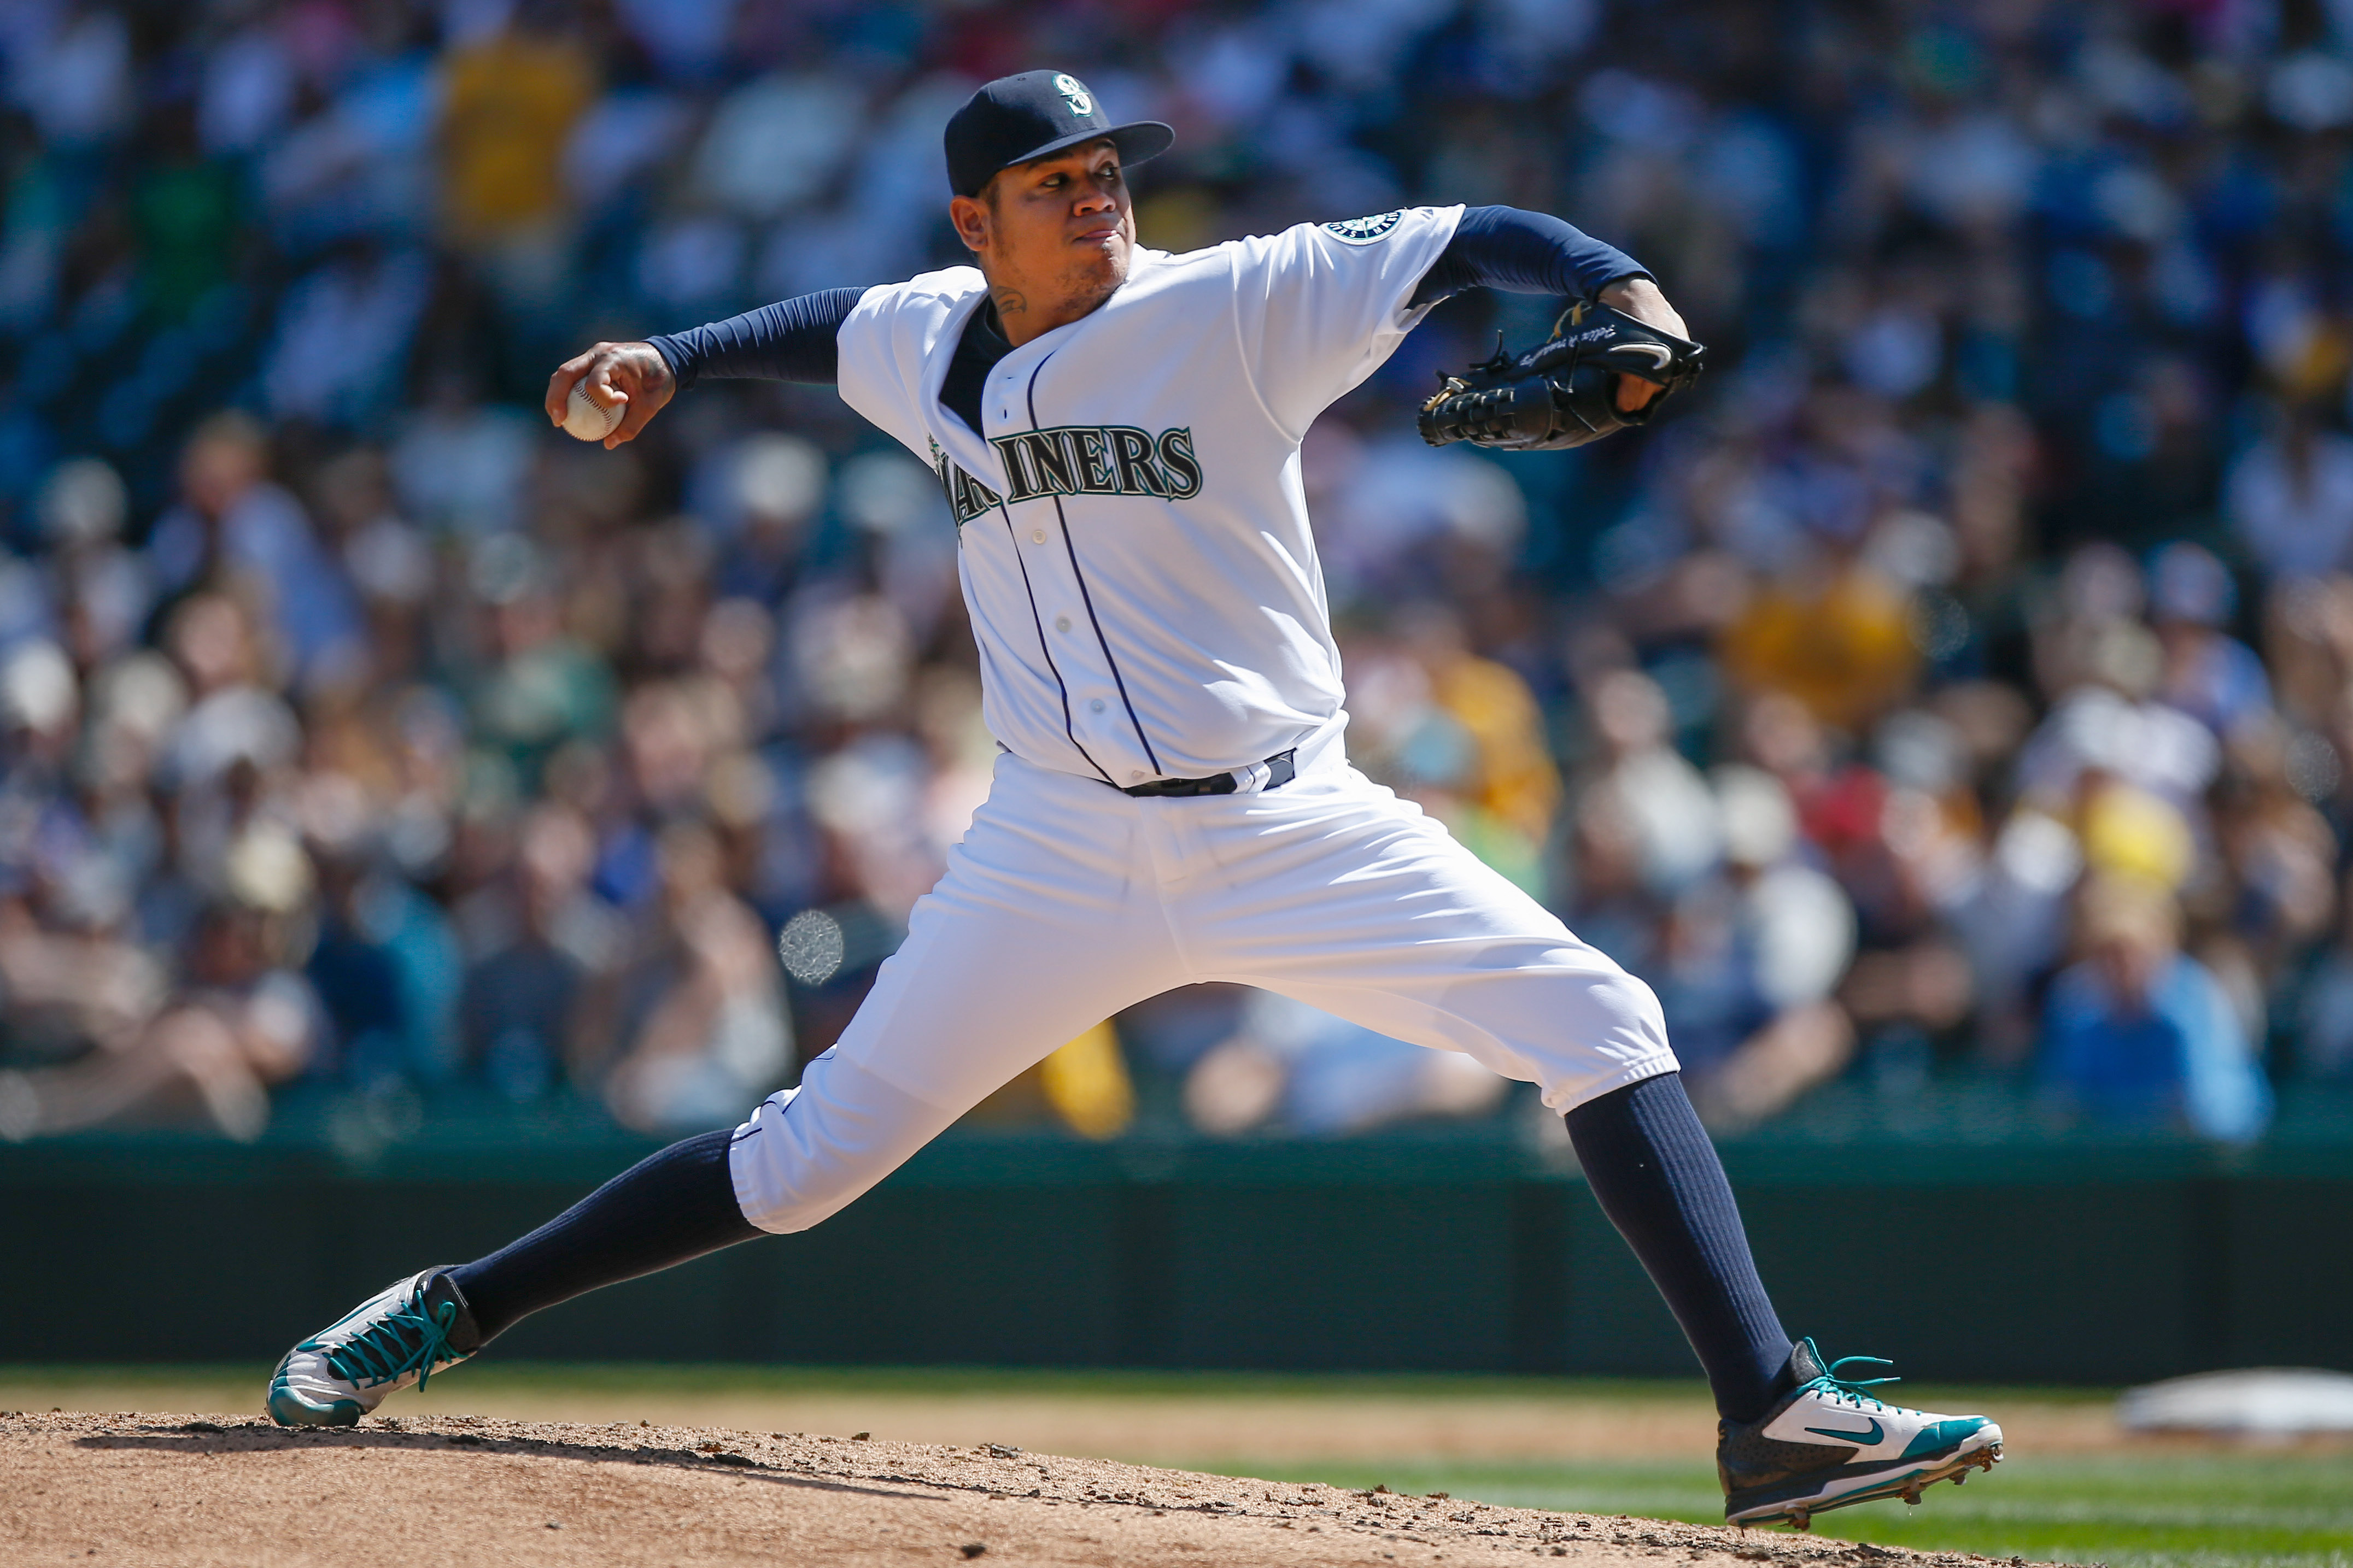 Mariners Spring Training Update – Day 29 « From the Corner ...